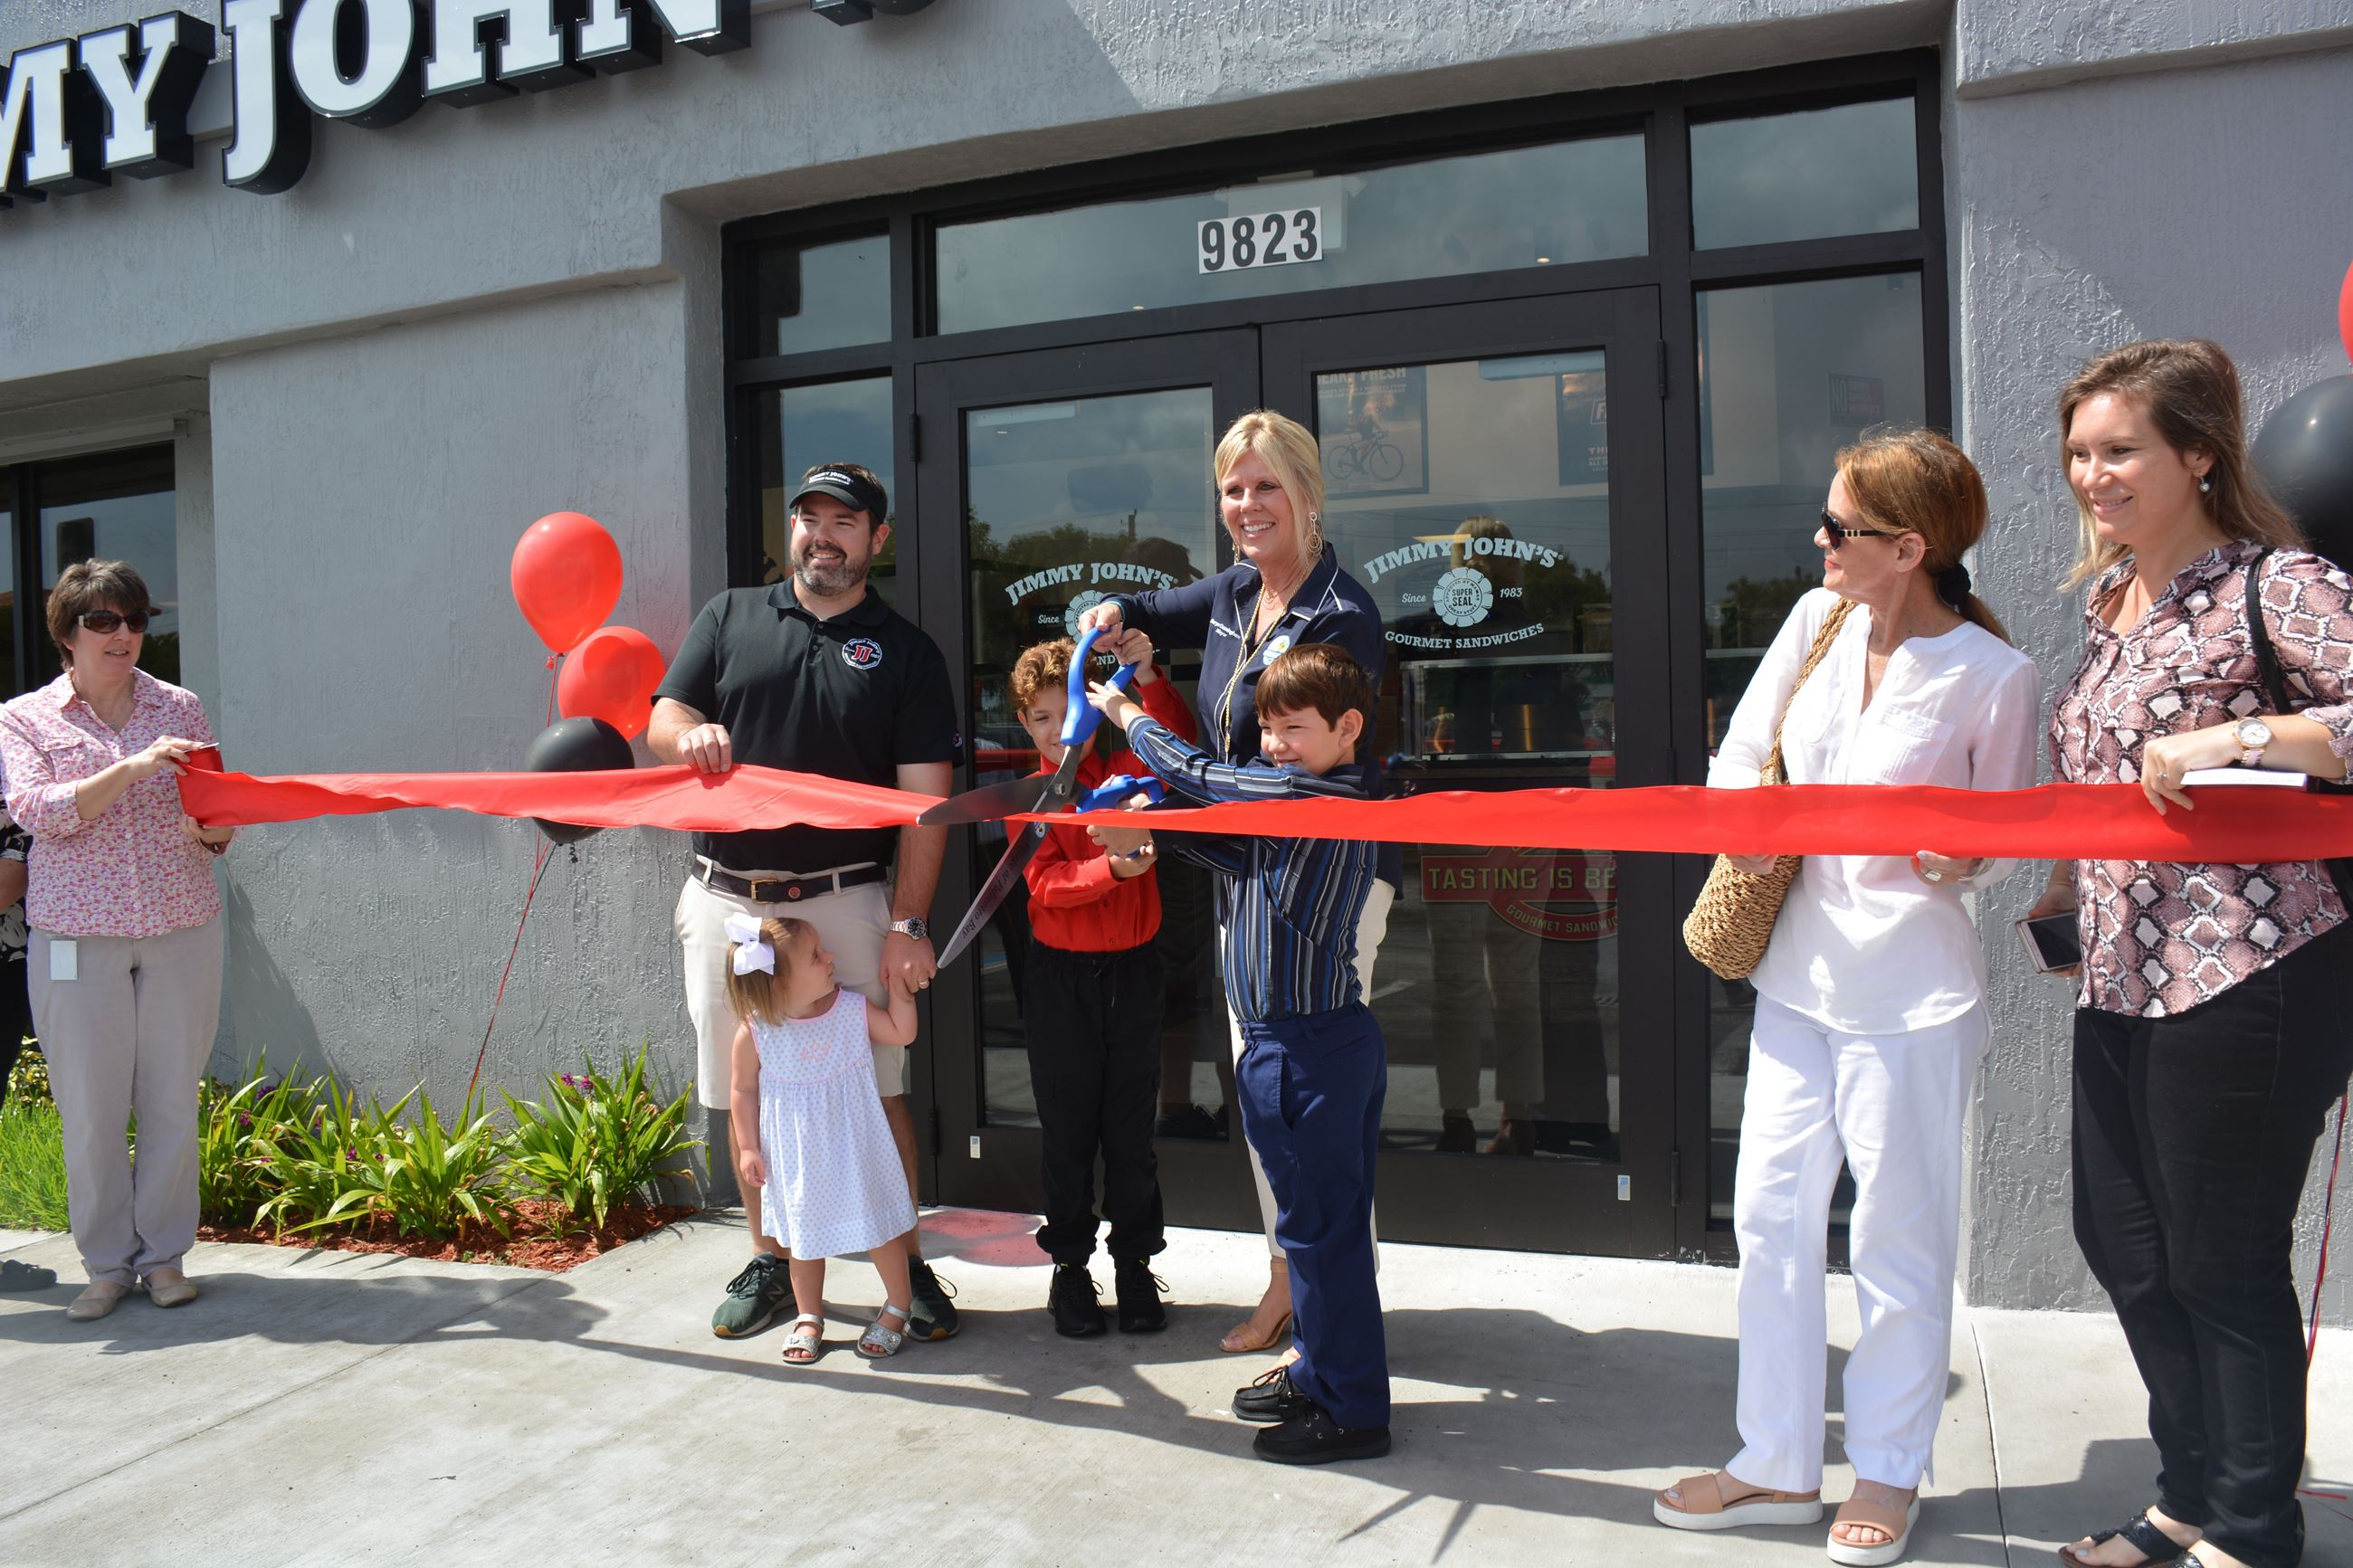 Mayor Cunningham and Franchisee Wade Copeland gather with others to cut the ribbon at the new Jimmy